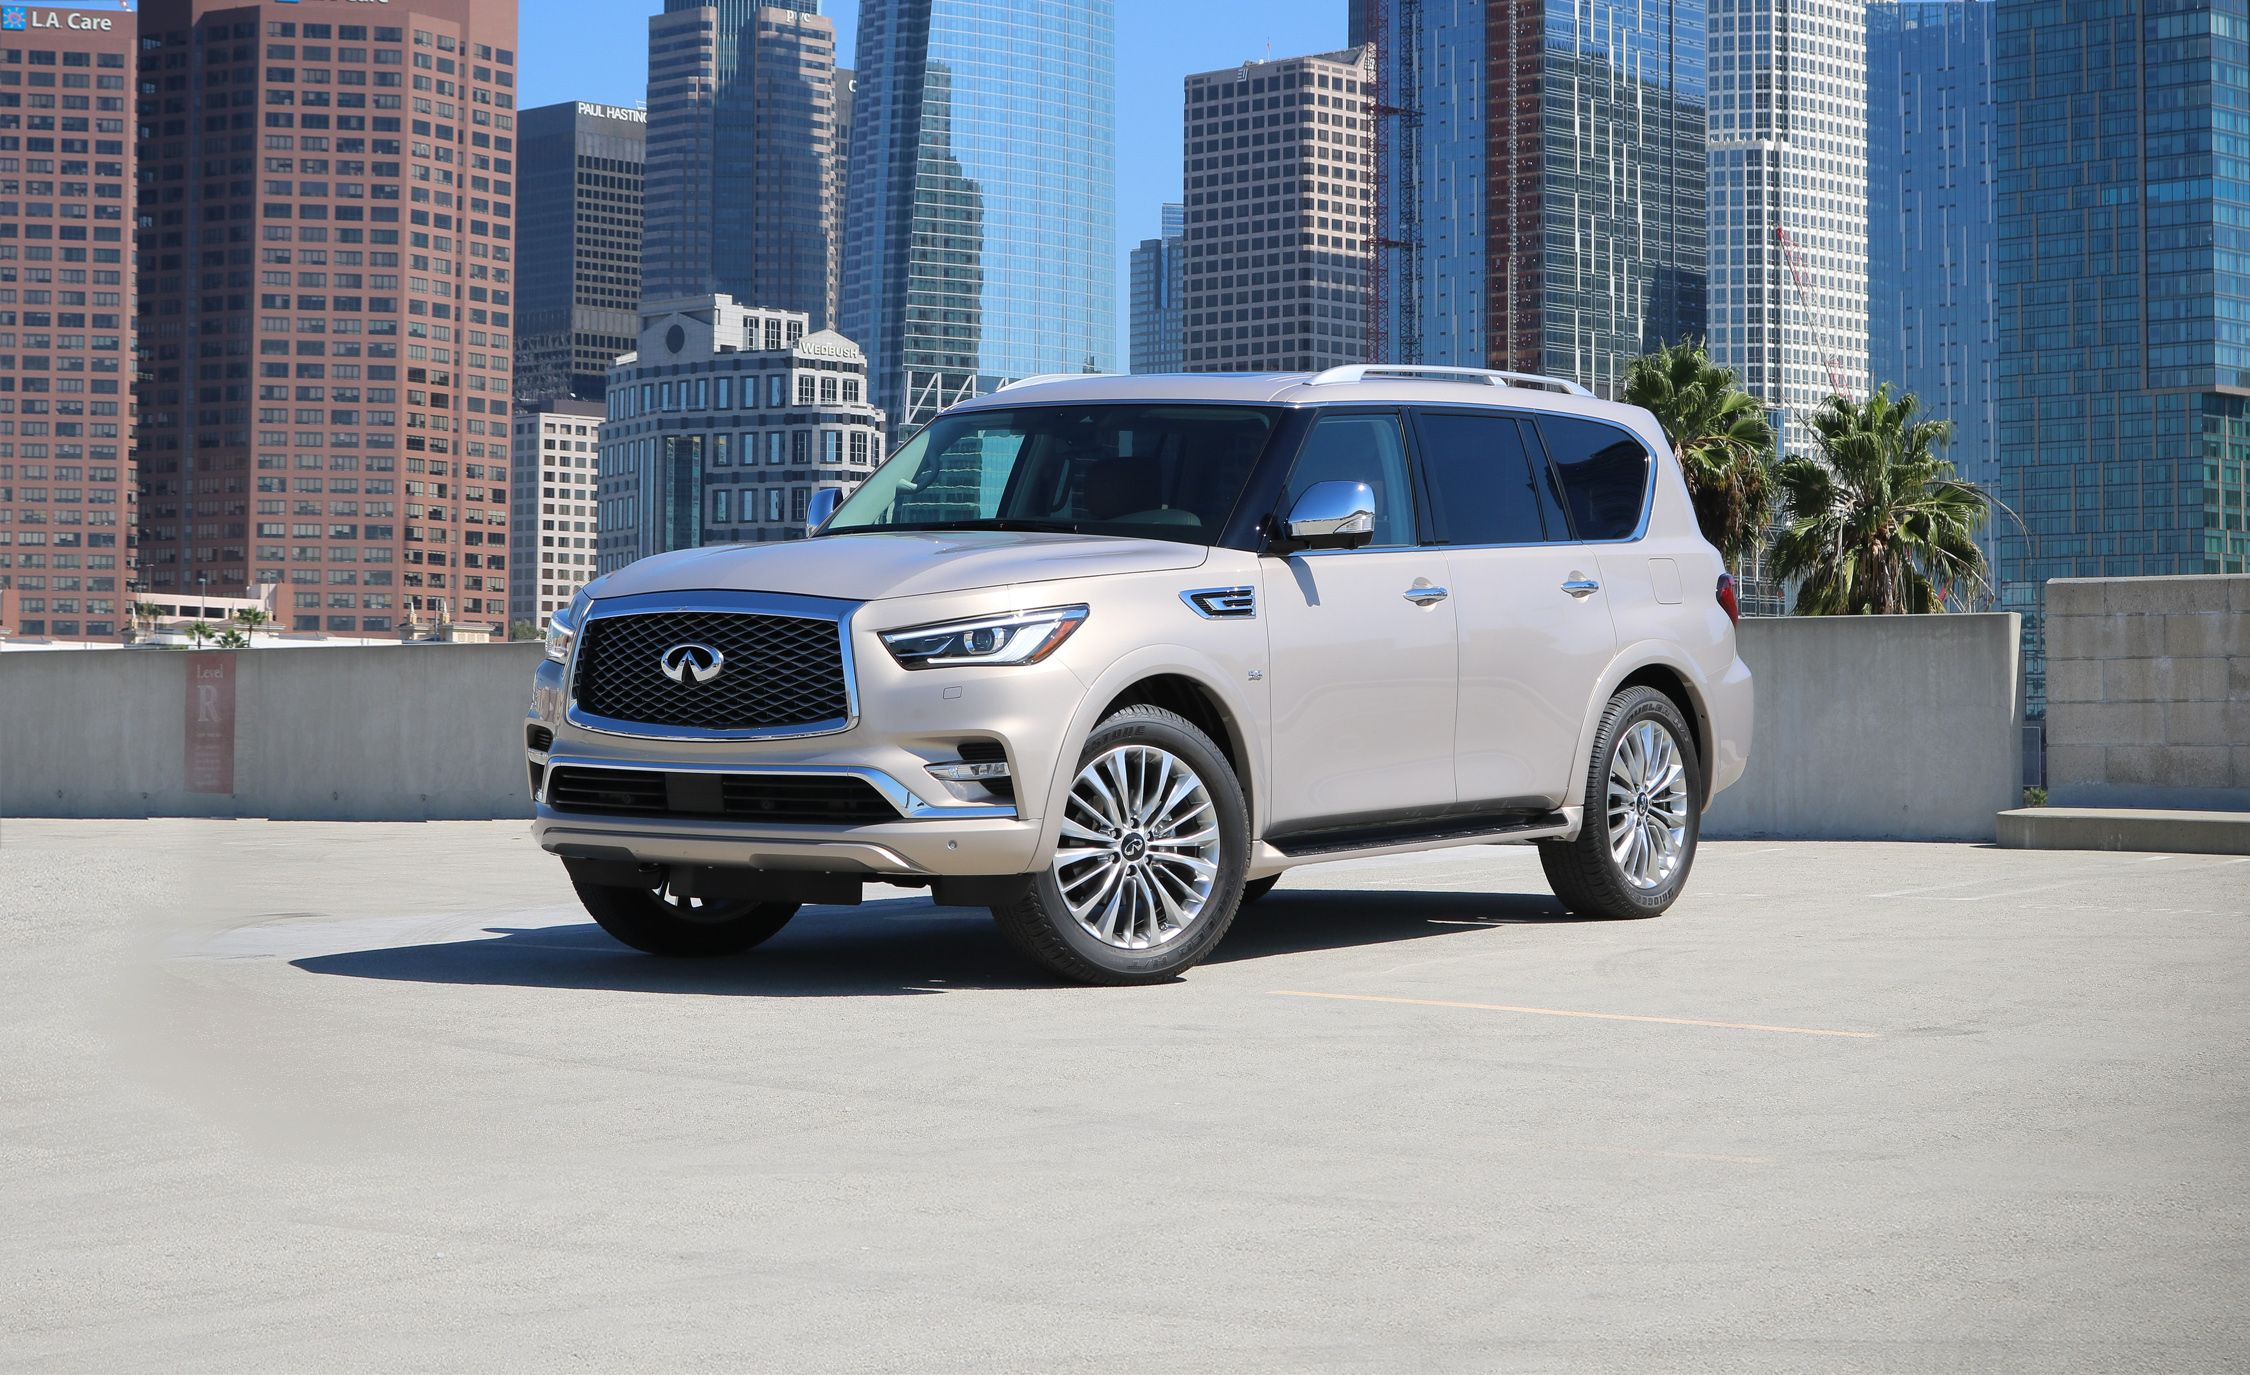 2018 Infiniti QX80 Revealed, Finally Looks the Brute-Ute ...